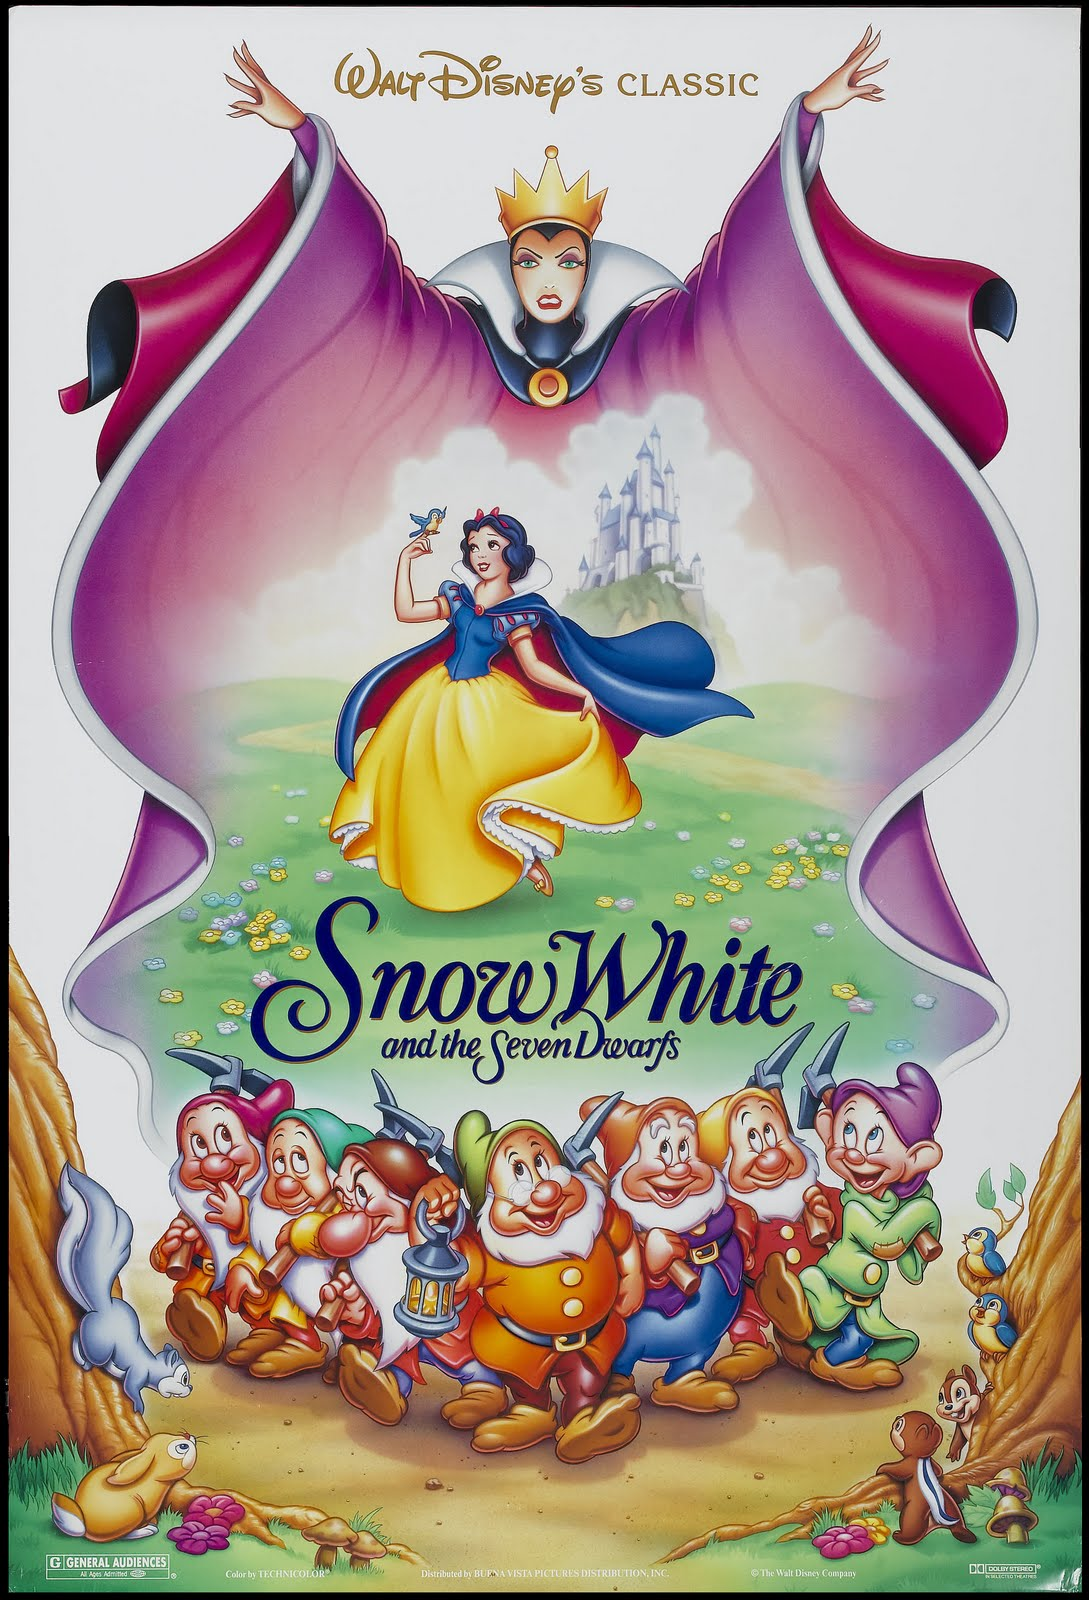 Snow white and the seven dwarfs movie  nudes comic